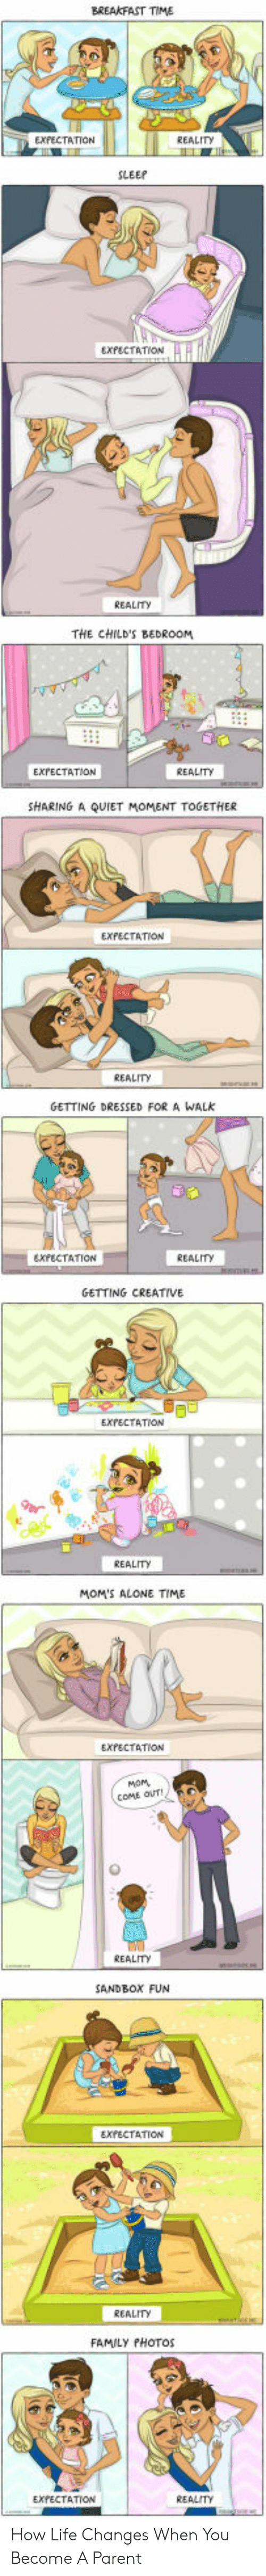 Family Photos: BREAKFAST TIME  EXPECTATION  REALITY  SLEEP  EXPECTATION  REALITY  THE CHILD'S BEDROOM  EXPECTATION  REALITY  SHARING A QUIET MOMENT TOGETHER  EXPECTATION  REALITY  GETTING DRESSED FOR A WALk  EXFECTATION  REALITy  GETTING CREATIVE  EXPECTATION  REALITY  MOM'S ALONE TIME  EXPECTATION  мом,  COME OUT  REALITY  SANDBOX FUN  EXPECTATION  REALITY  FAMILY PHOTOS  EXPECTATION  REALITY How Life Changes When You Become A Parent